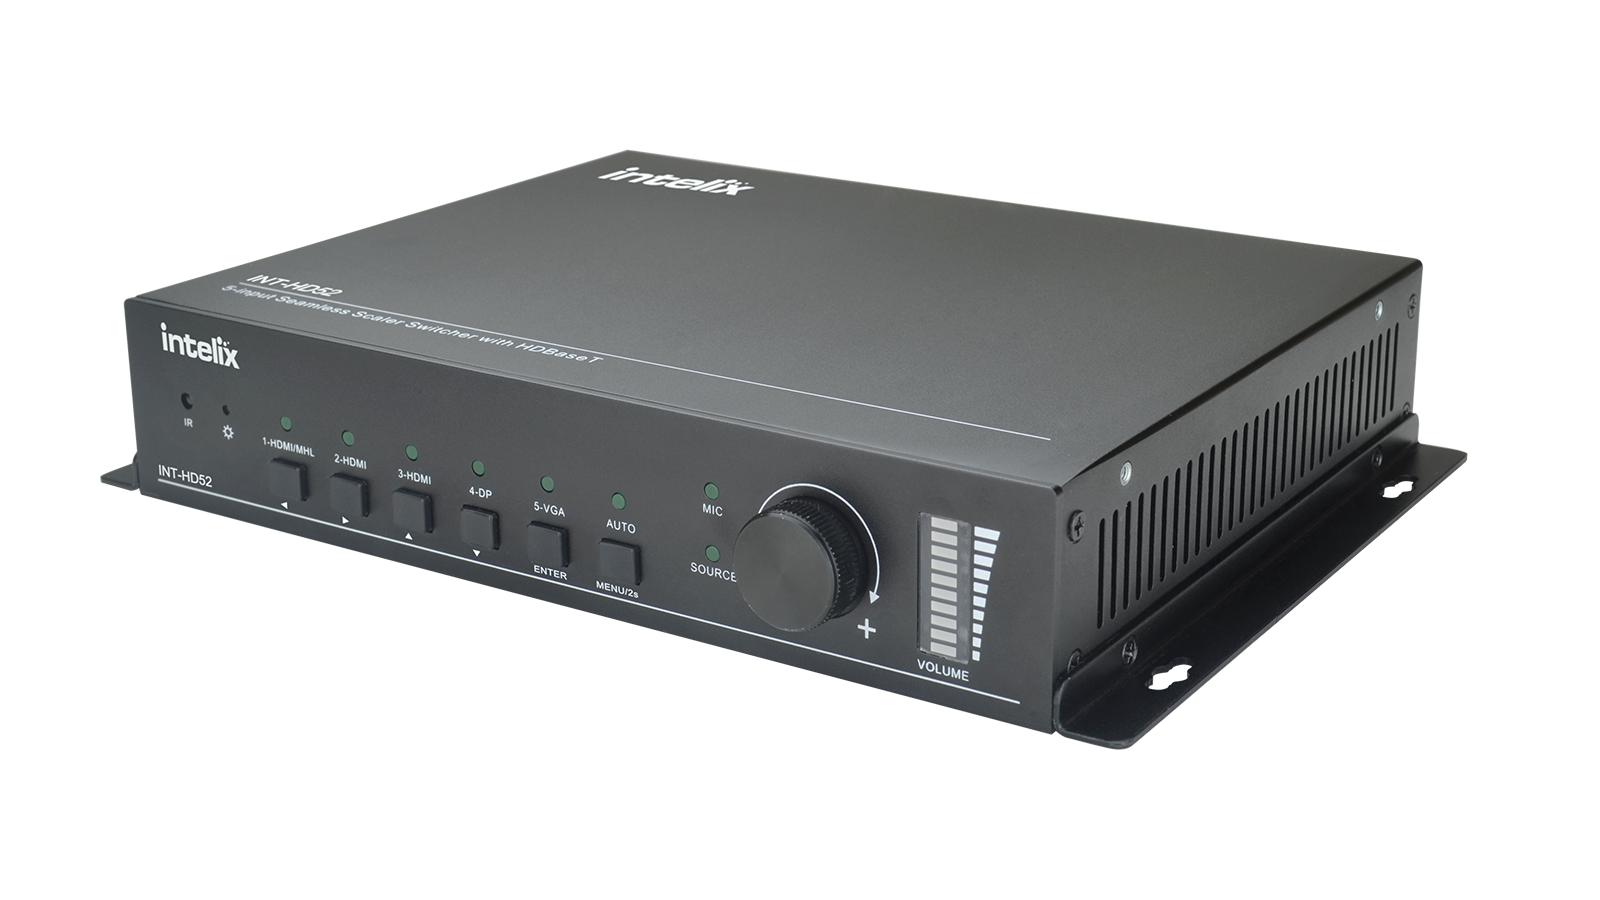 Int Hd52 5x1 Auto Switching Presentation Switcher With Hdbaset Output Project 3a 8211 60 100w Hi Fi Power Amplifier No Equivalent Alternates Available For